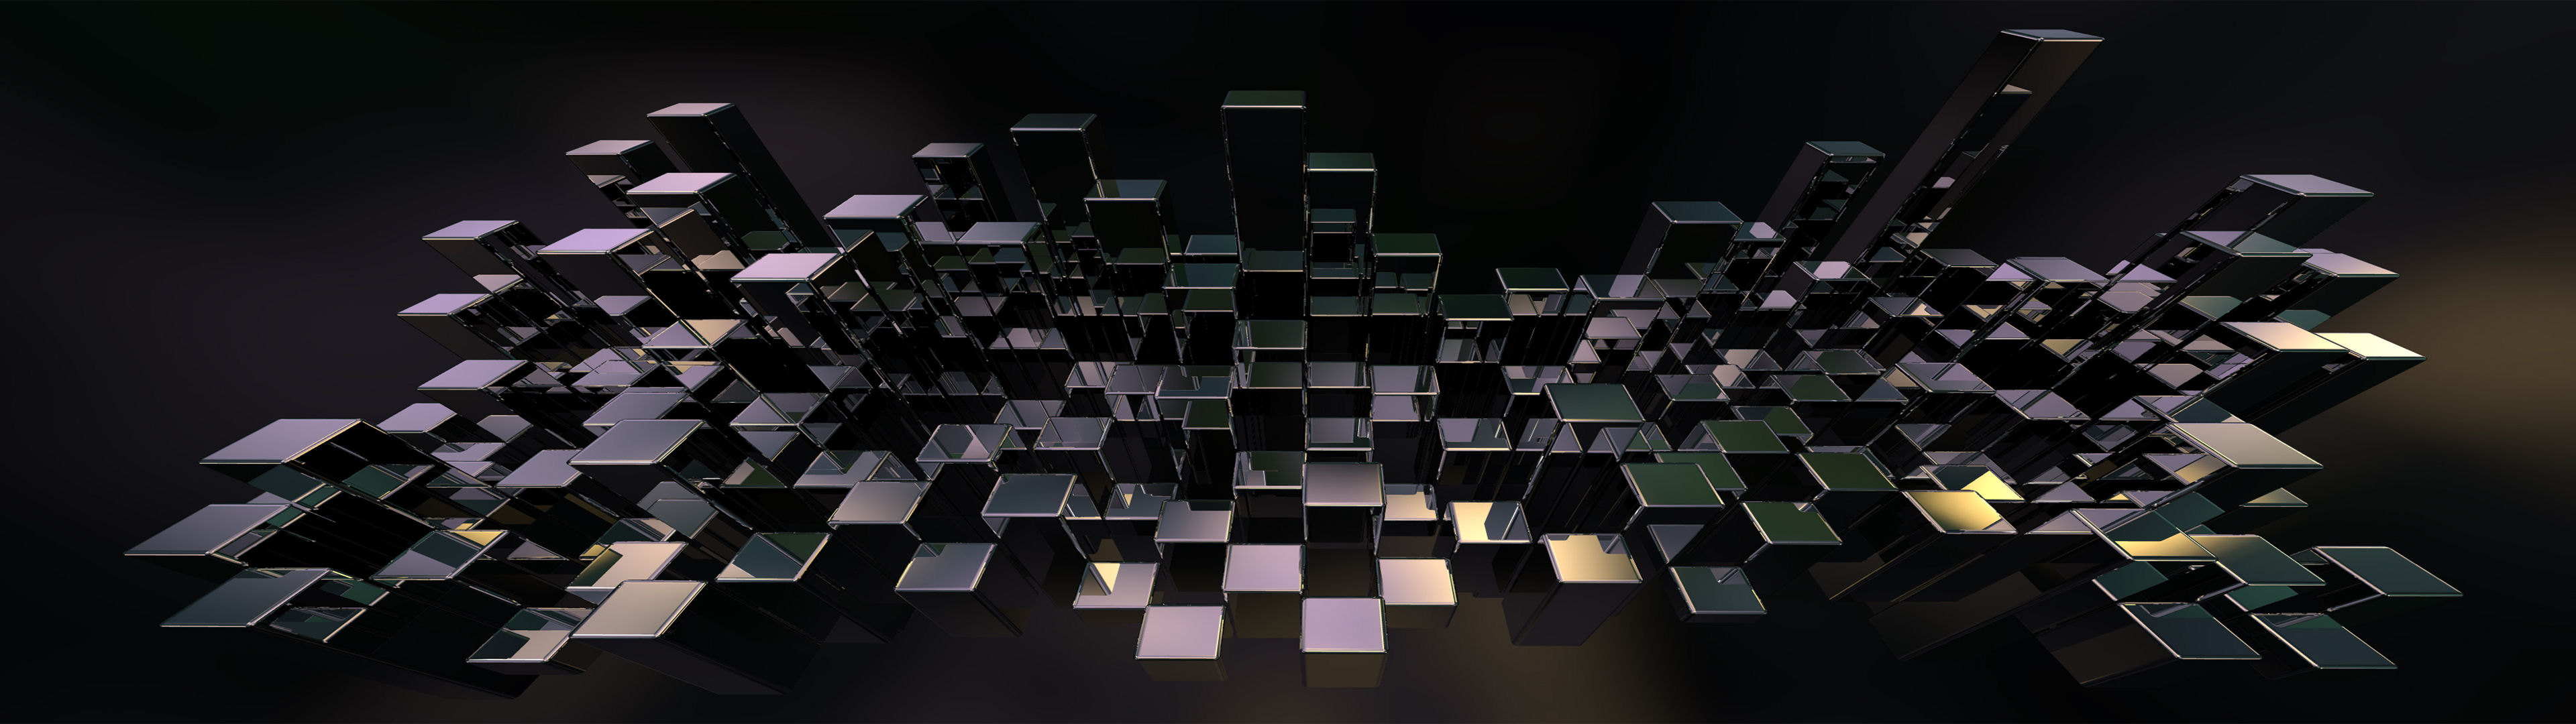 3840x1080 clipart abstract.